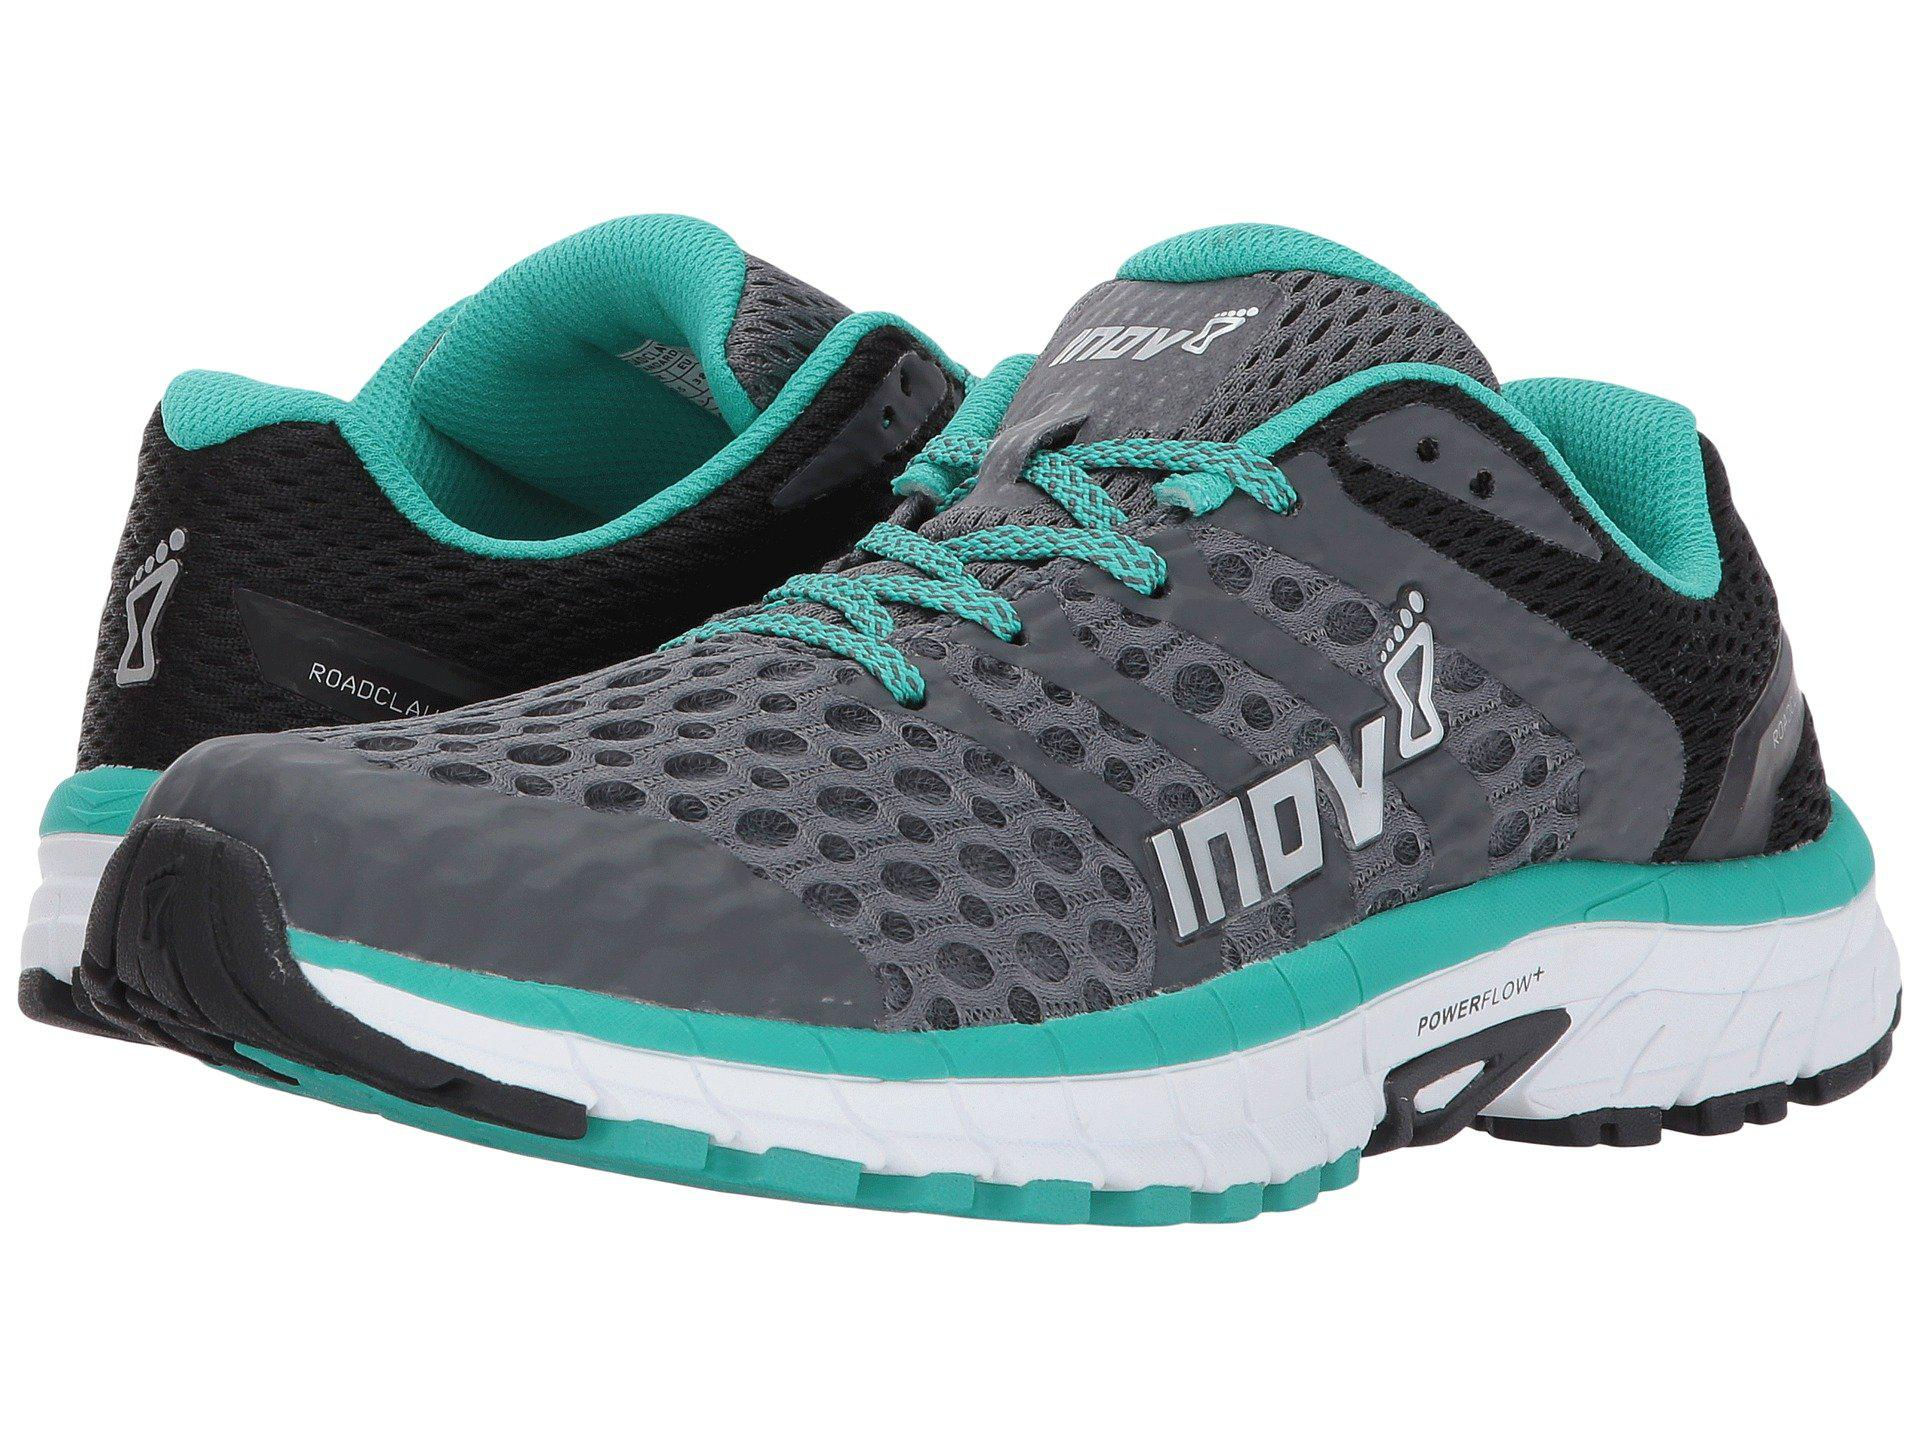 2135a0207fe57d Lyst - Inov-8 Roadclaw 275 V2 (grey teal) Women s Running Shoes in Gray